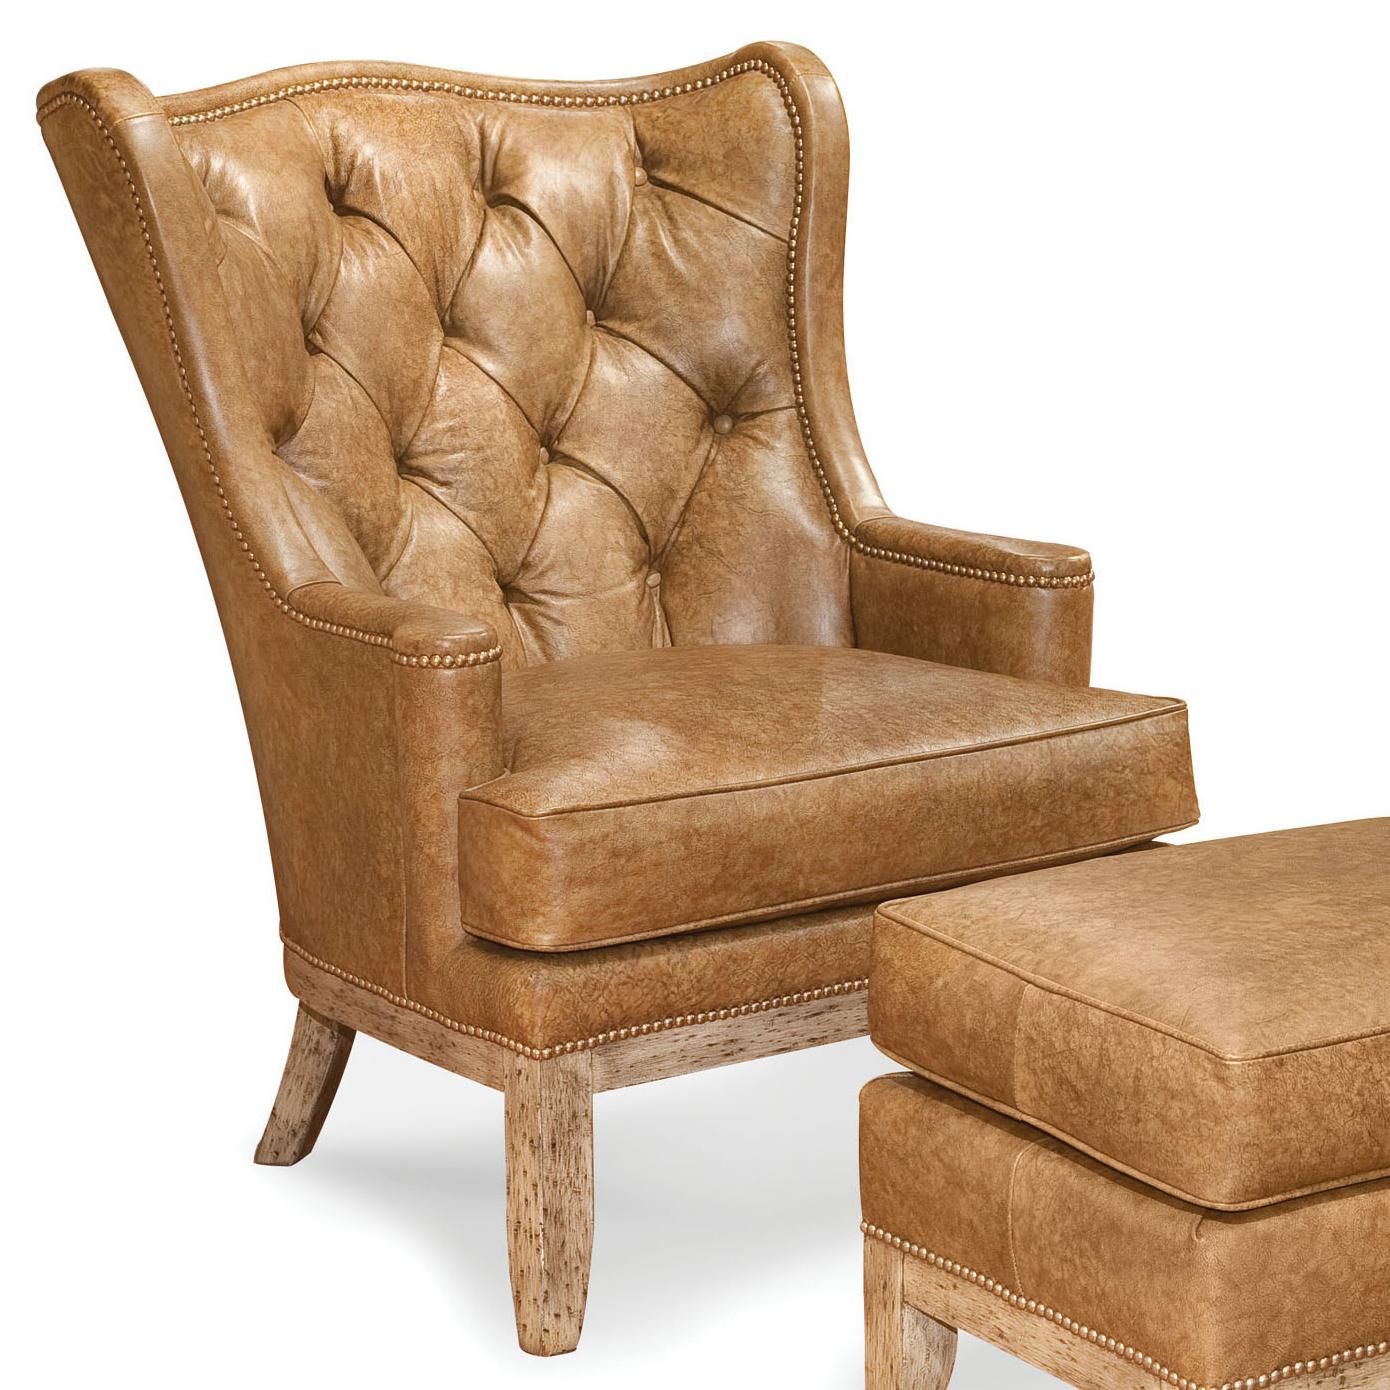 Fairfield Chairs Fairfield Chairs Tufted Wing Chair With Nailhead Trim Belfort